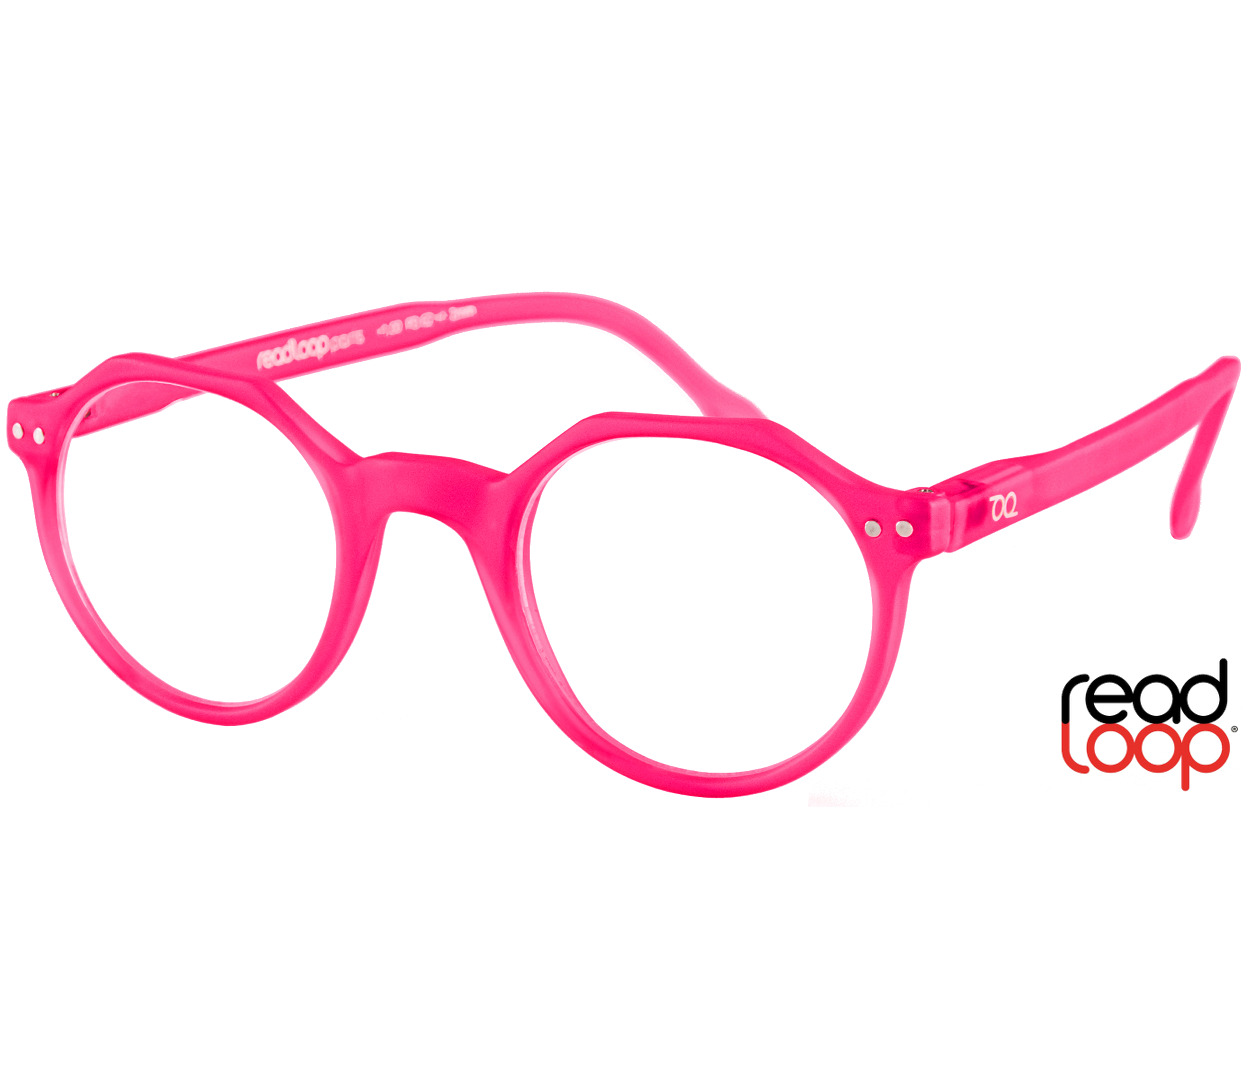 Main Image (Angle) - Hurricane (Pink) Retro Reading Glasses